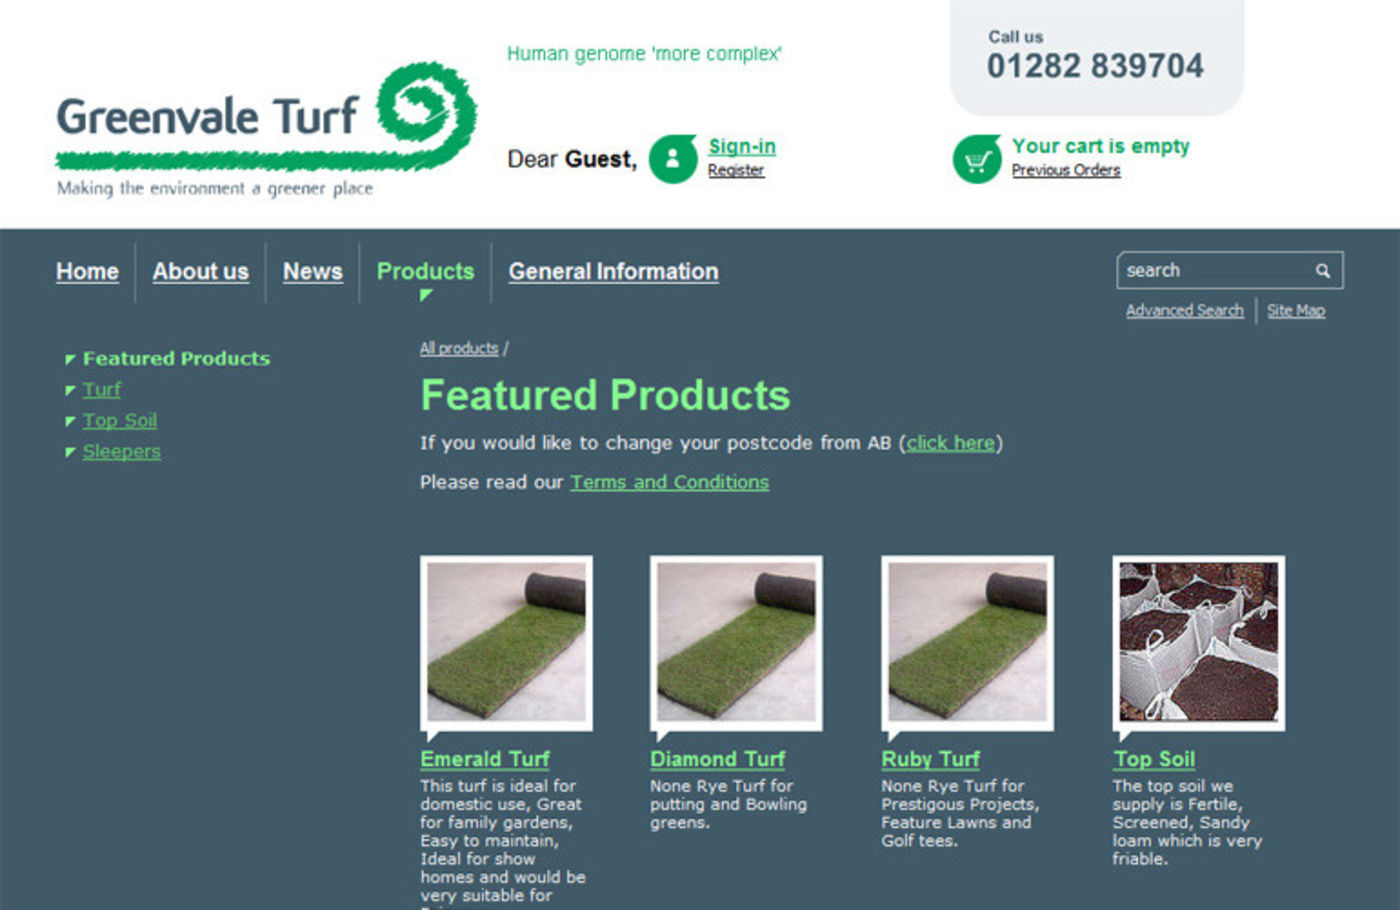 Greenvale Turf Products